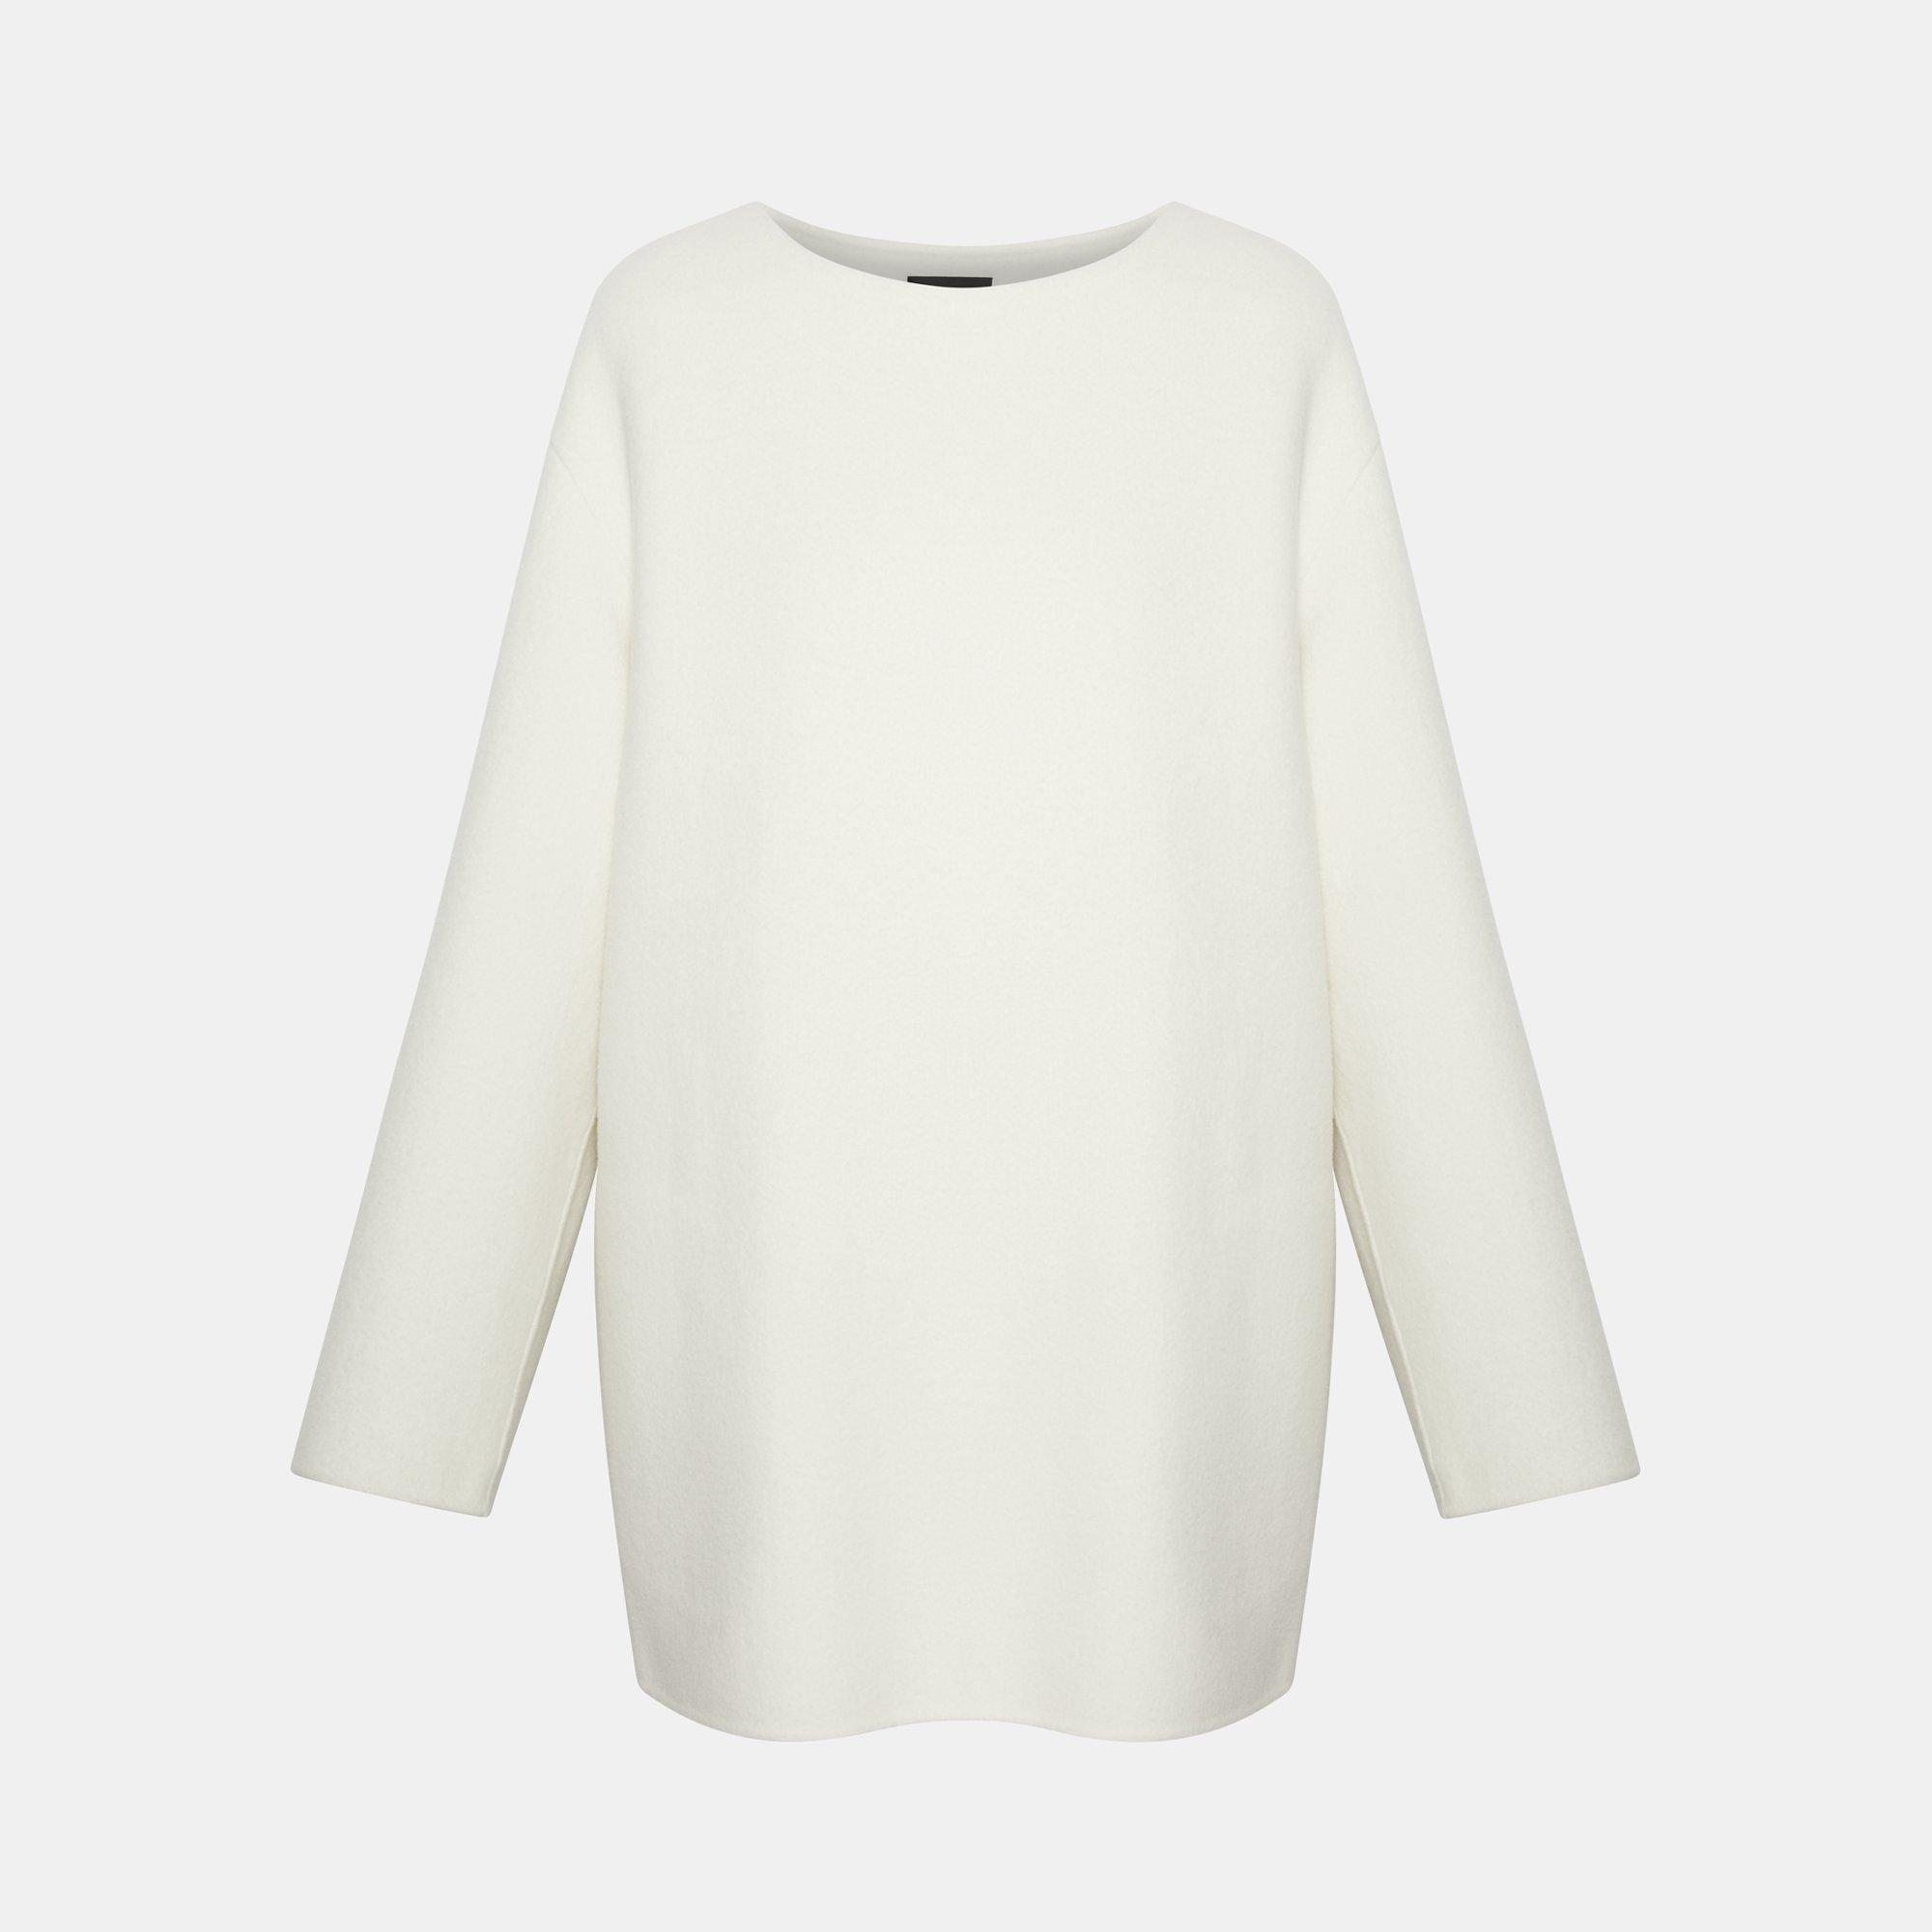 wool cashmere long sleeve tunic theory Long Sleeve Shirt Clip Art wool cashmere long sleeve tunic 1 click to view larger image